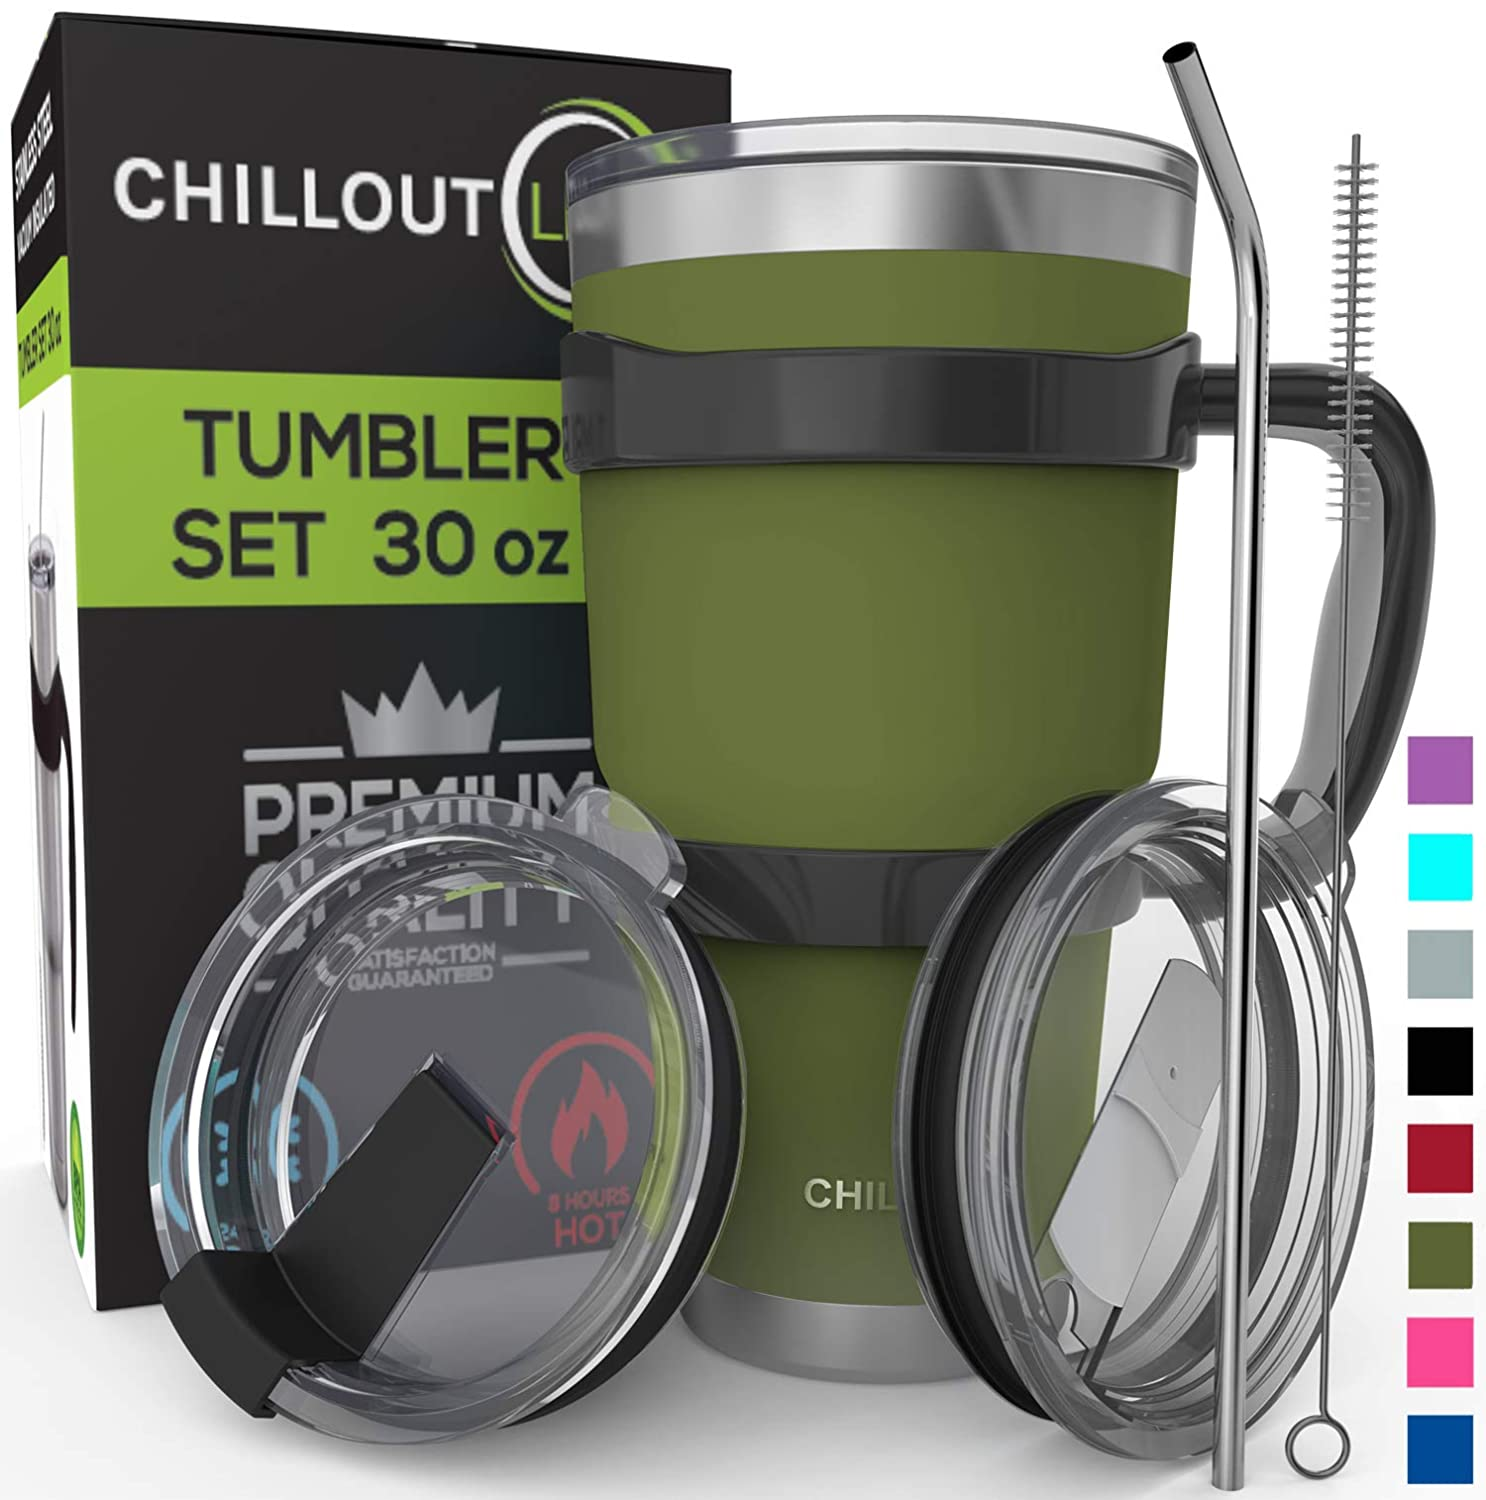 Stainless Steel Travel Mug with Handle 30oz - 6 Piece Set. Tumbler with Handle, Straw, Cleaning Brush & 2 Lids. Double Wall Insulated Large Coffee Mug Bundle - Army Gree Powder Coat Tumbler